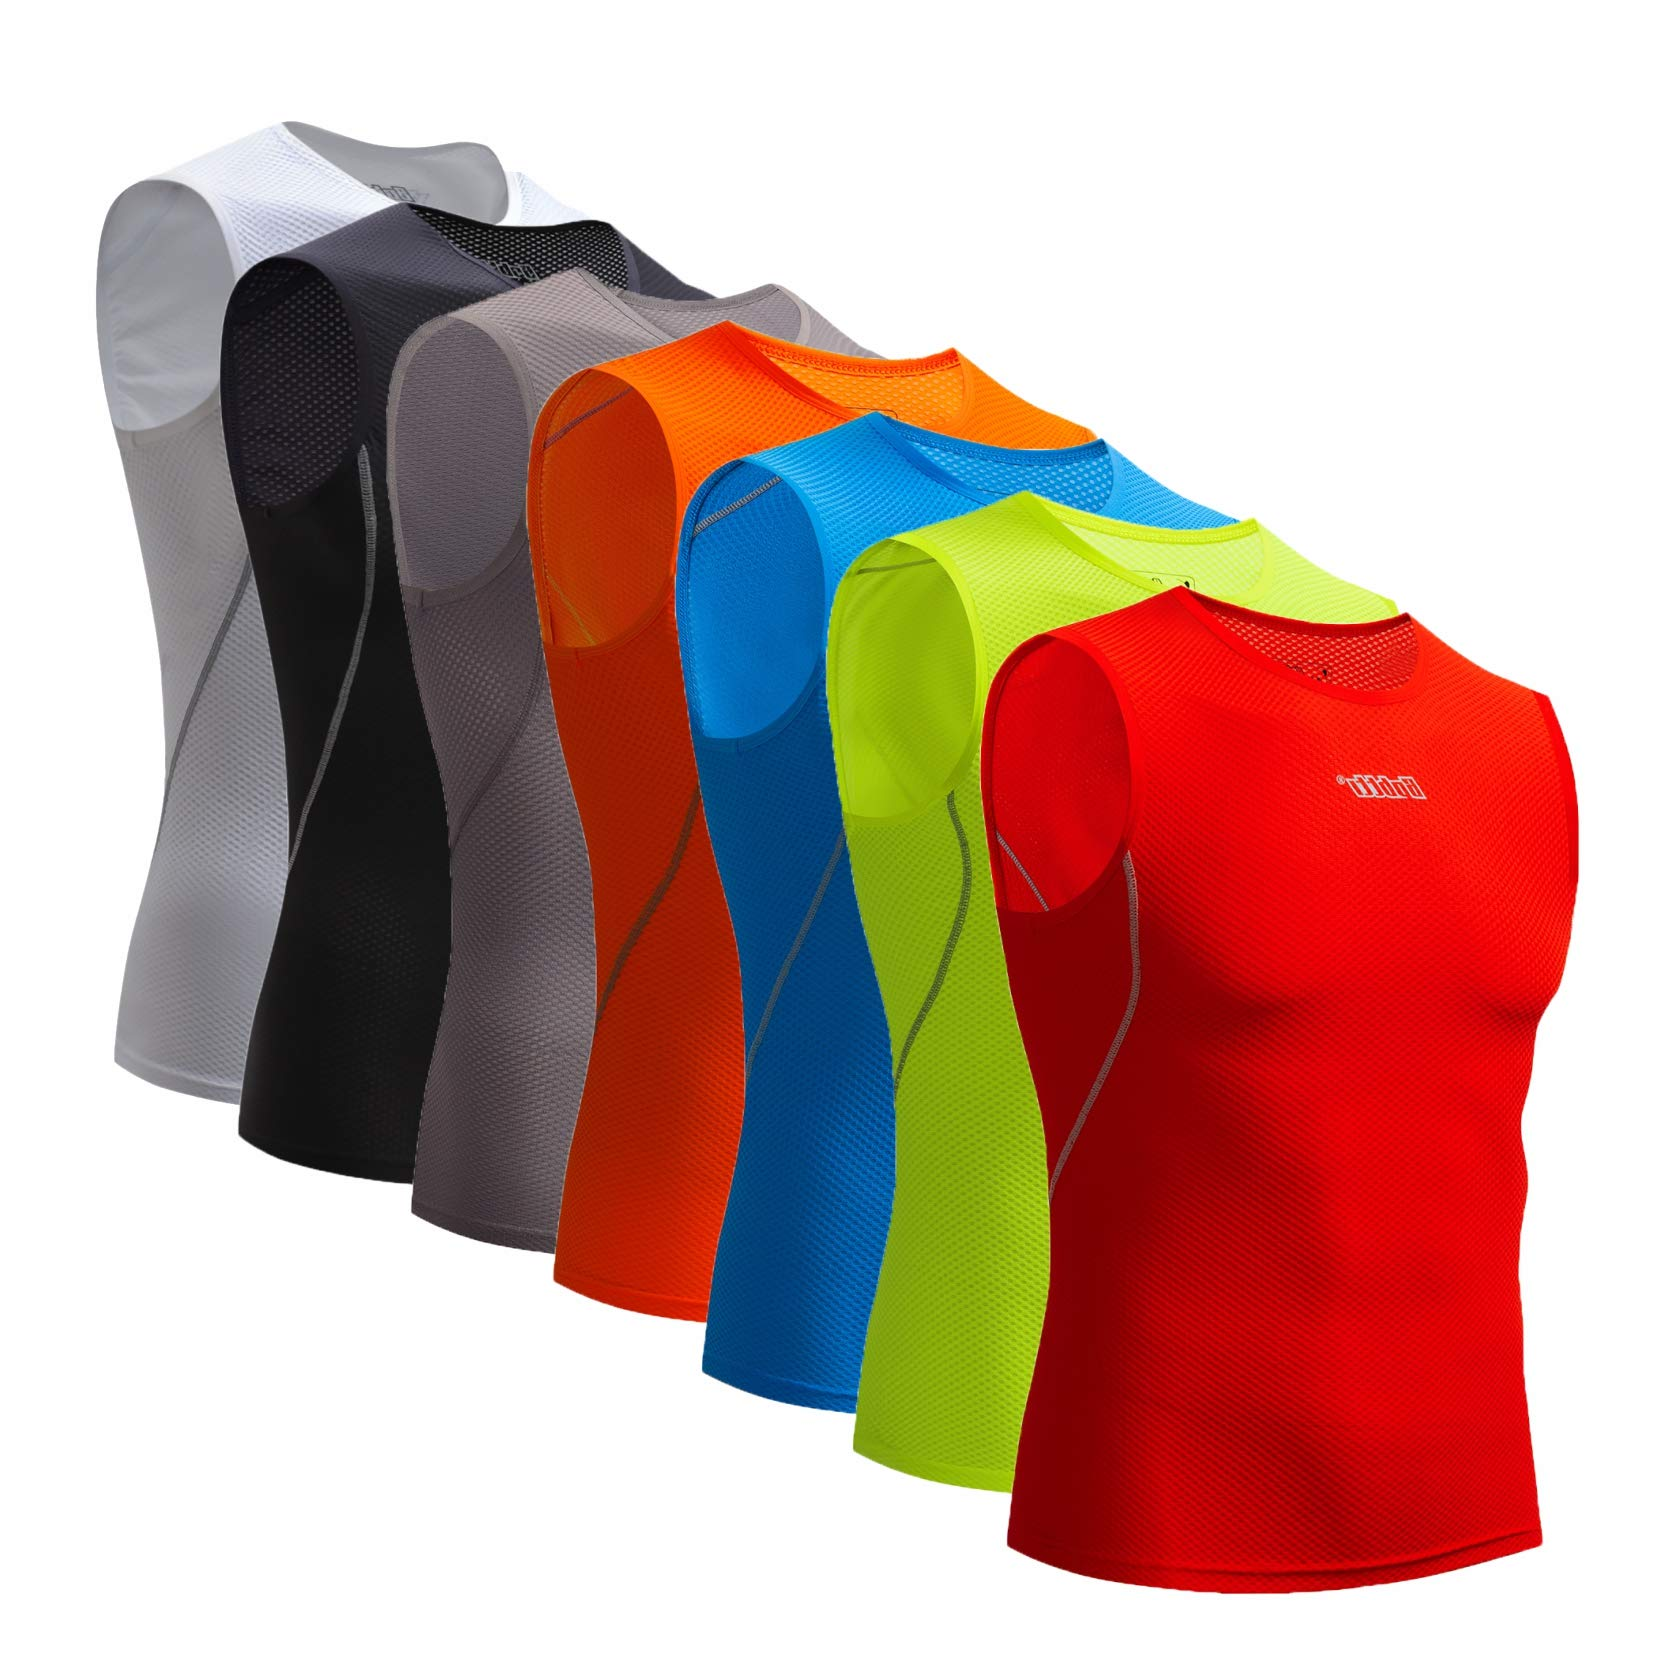 Bpbtti Men's Sleeveless Cycling Base Layer Bike Undershirt,Breathable,Superlight and Moisture Wicking (1 Pack Red, Small)